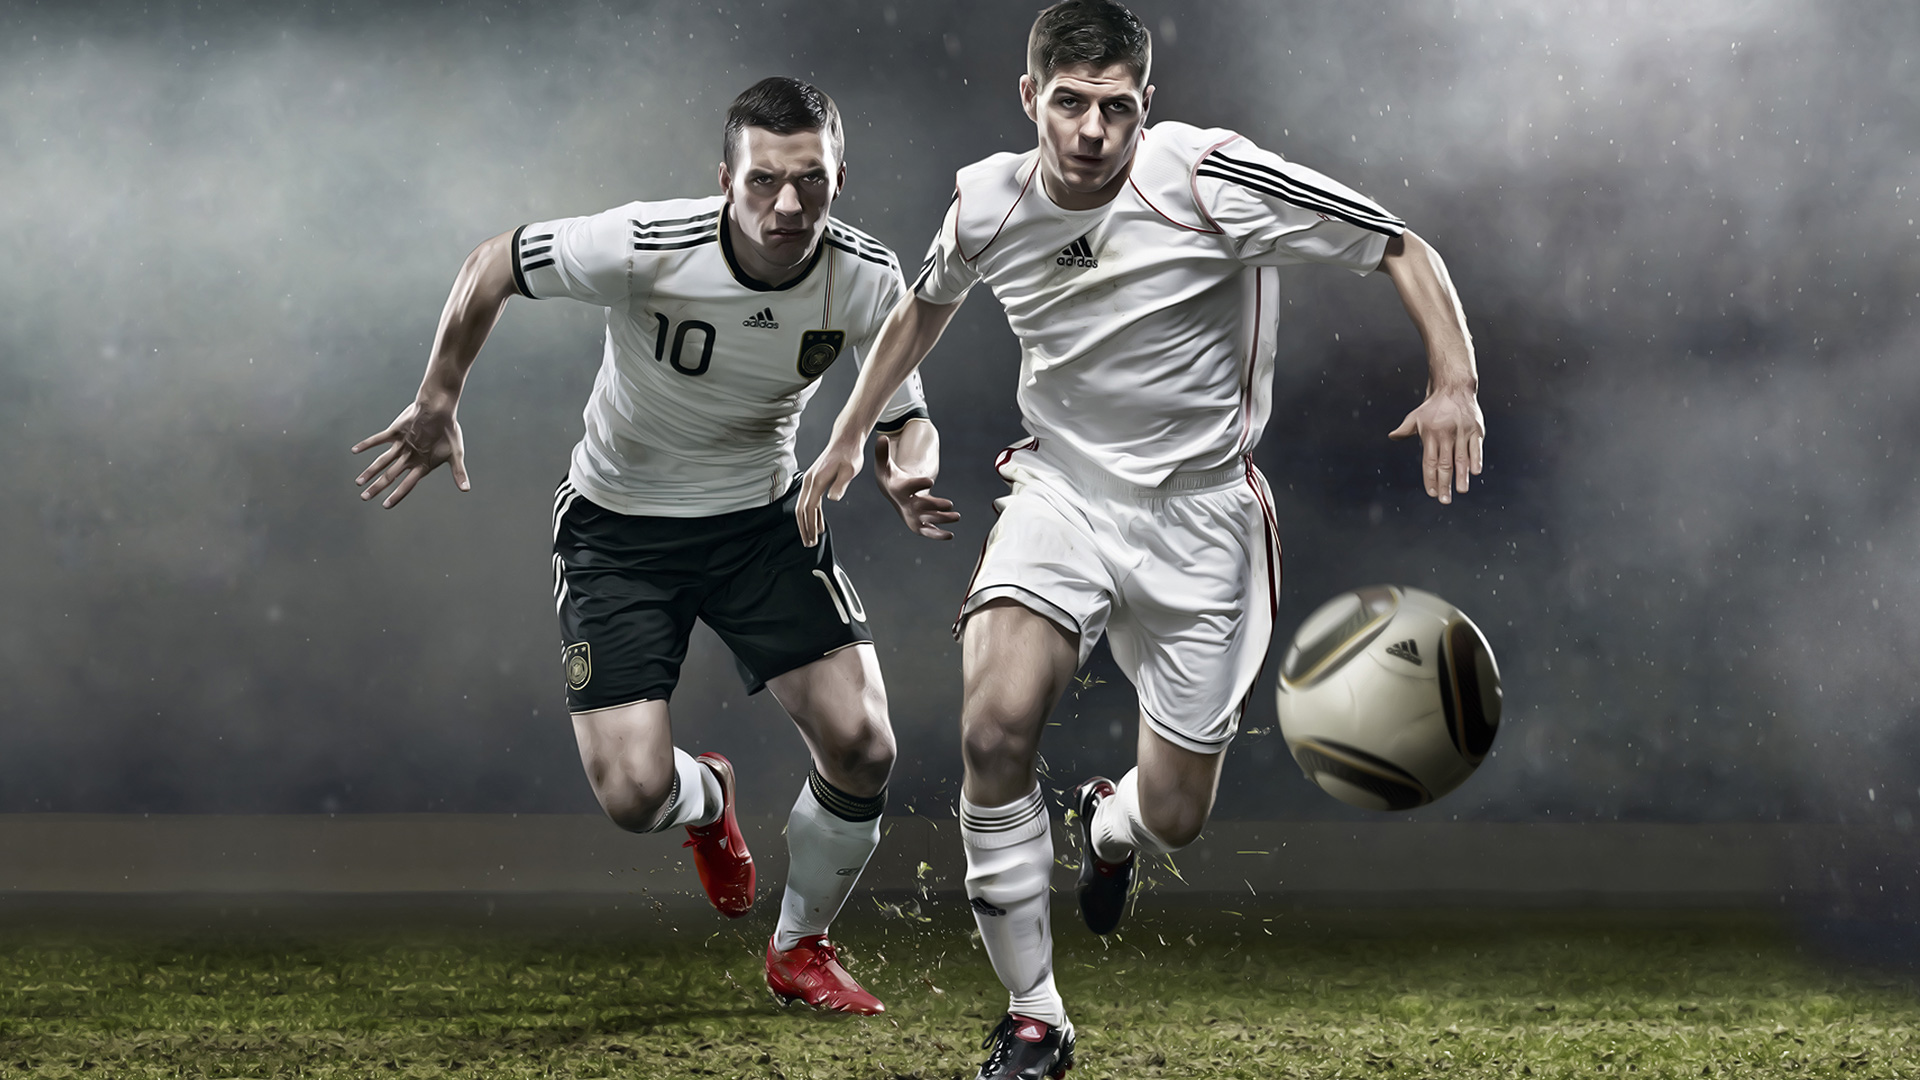 Pure Football Wallpaper in 1920x1080